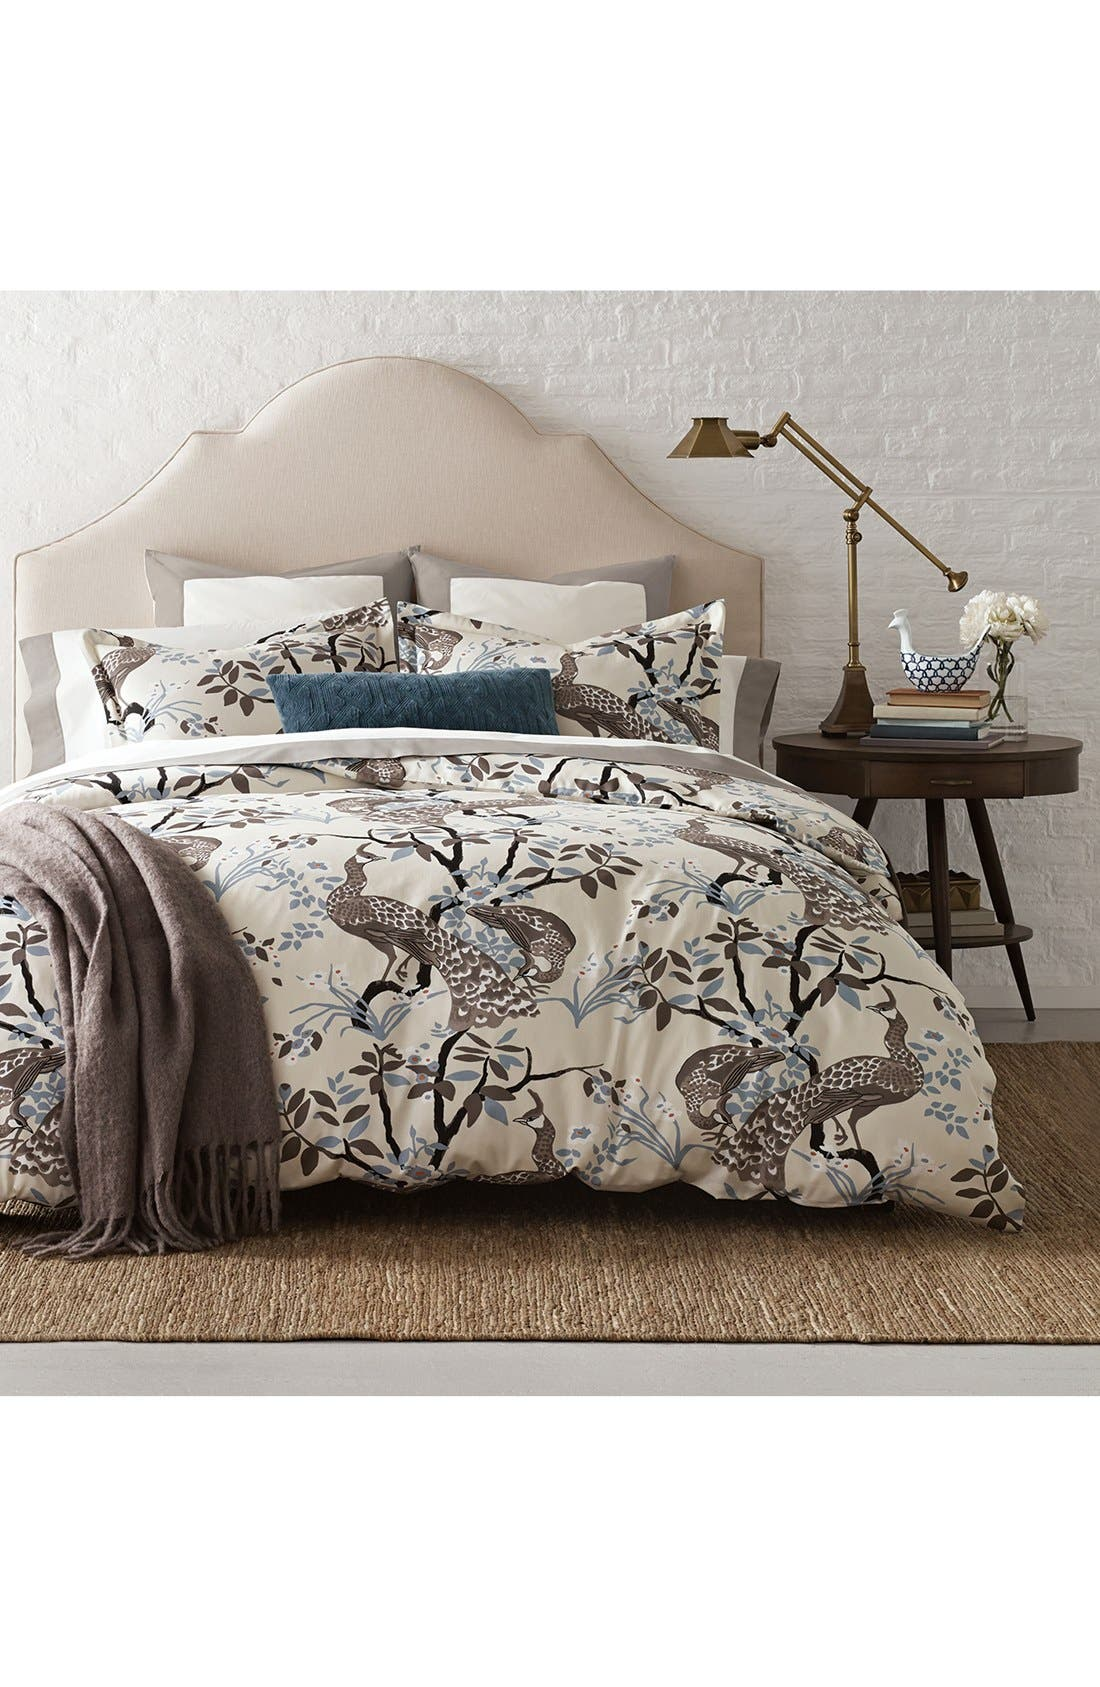 'Peacock' Duvet Cover,                         Main,                         color, 900